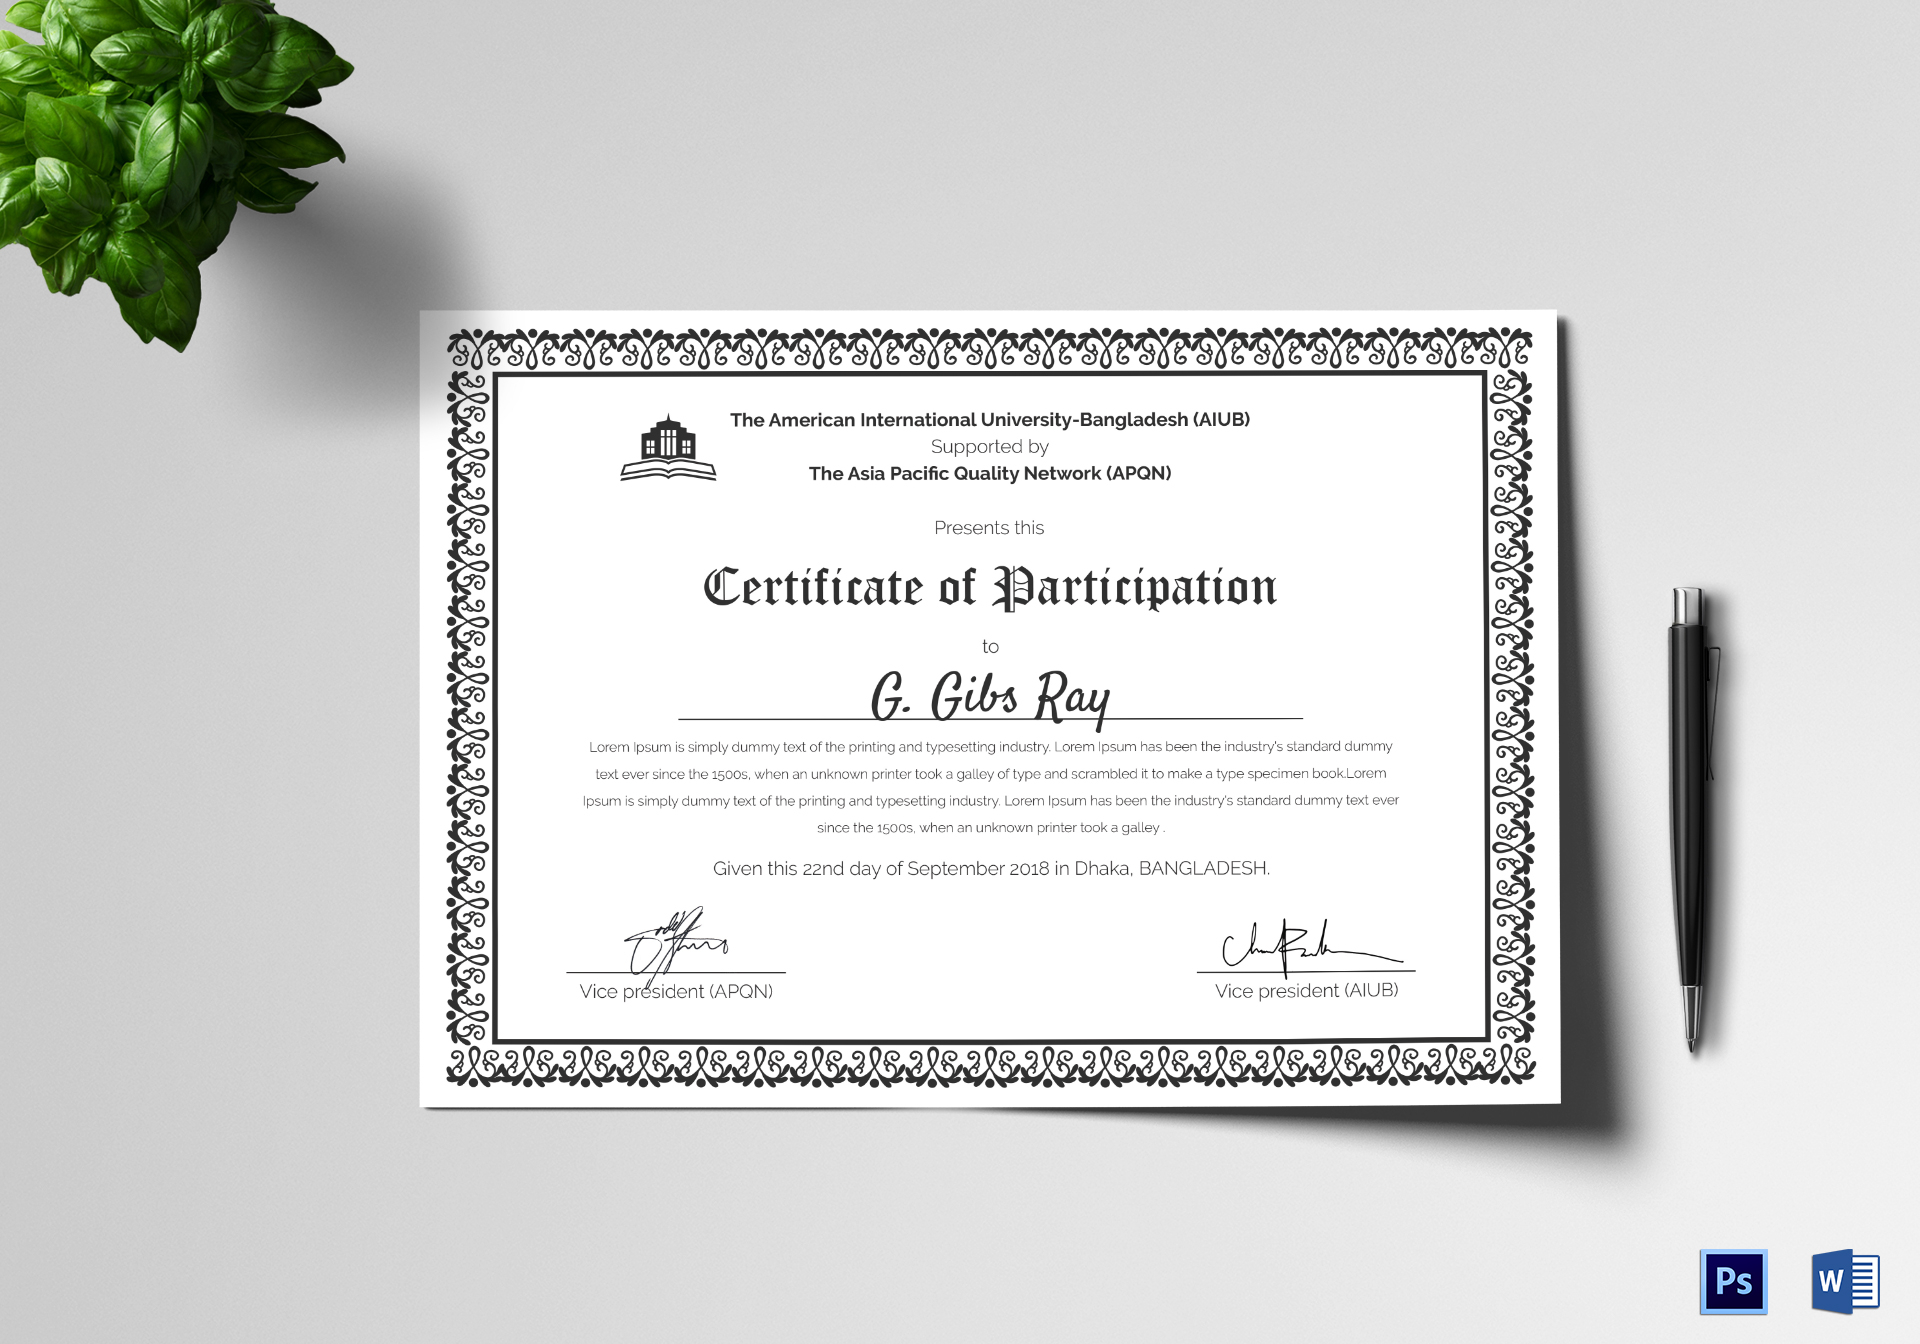 Printable Participation Certificate Design Template in PSD ...